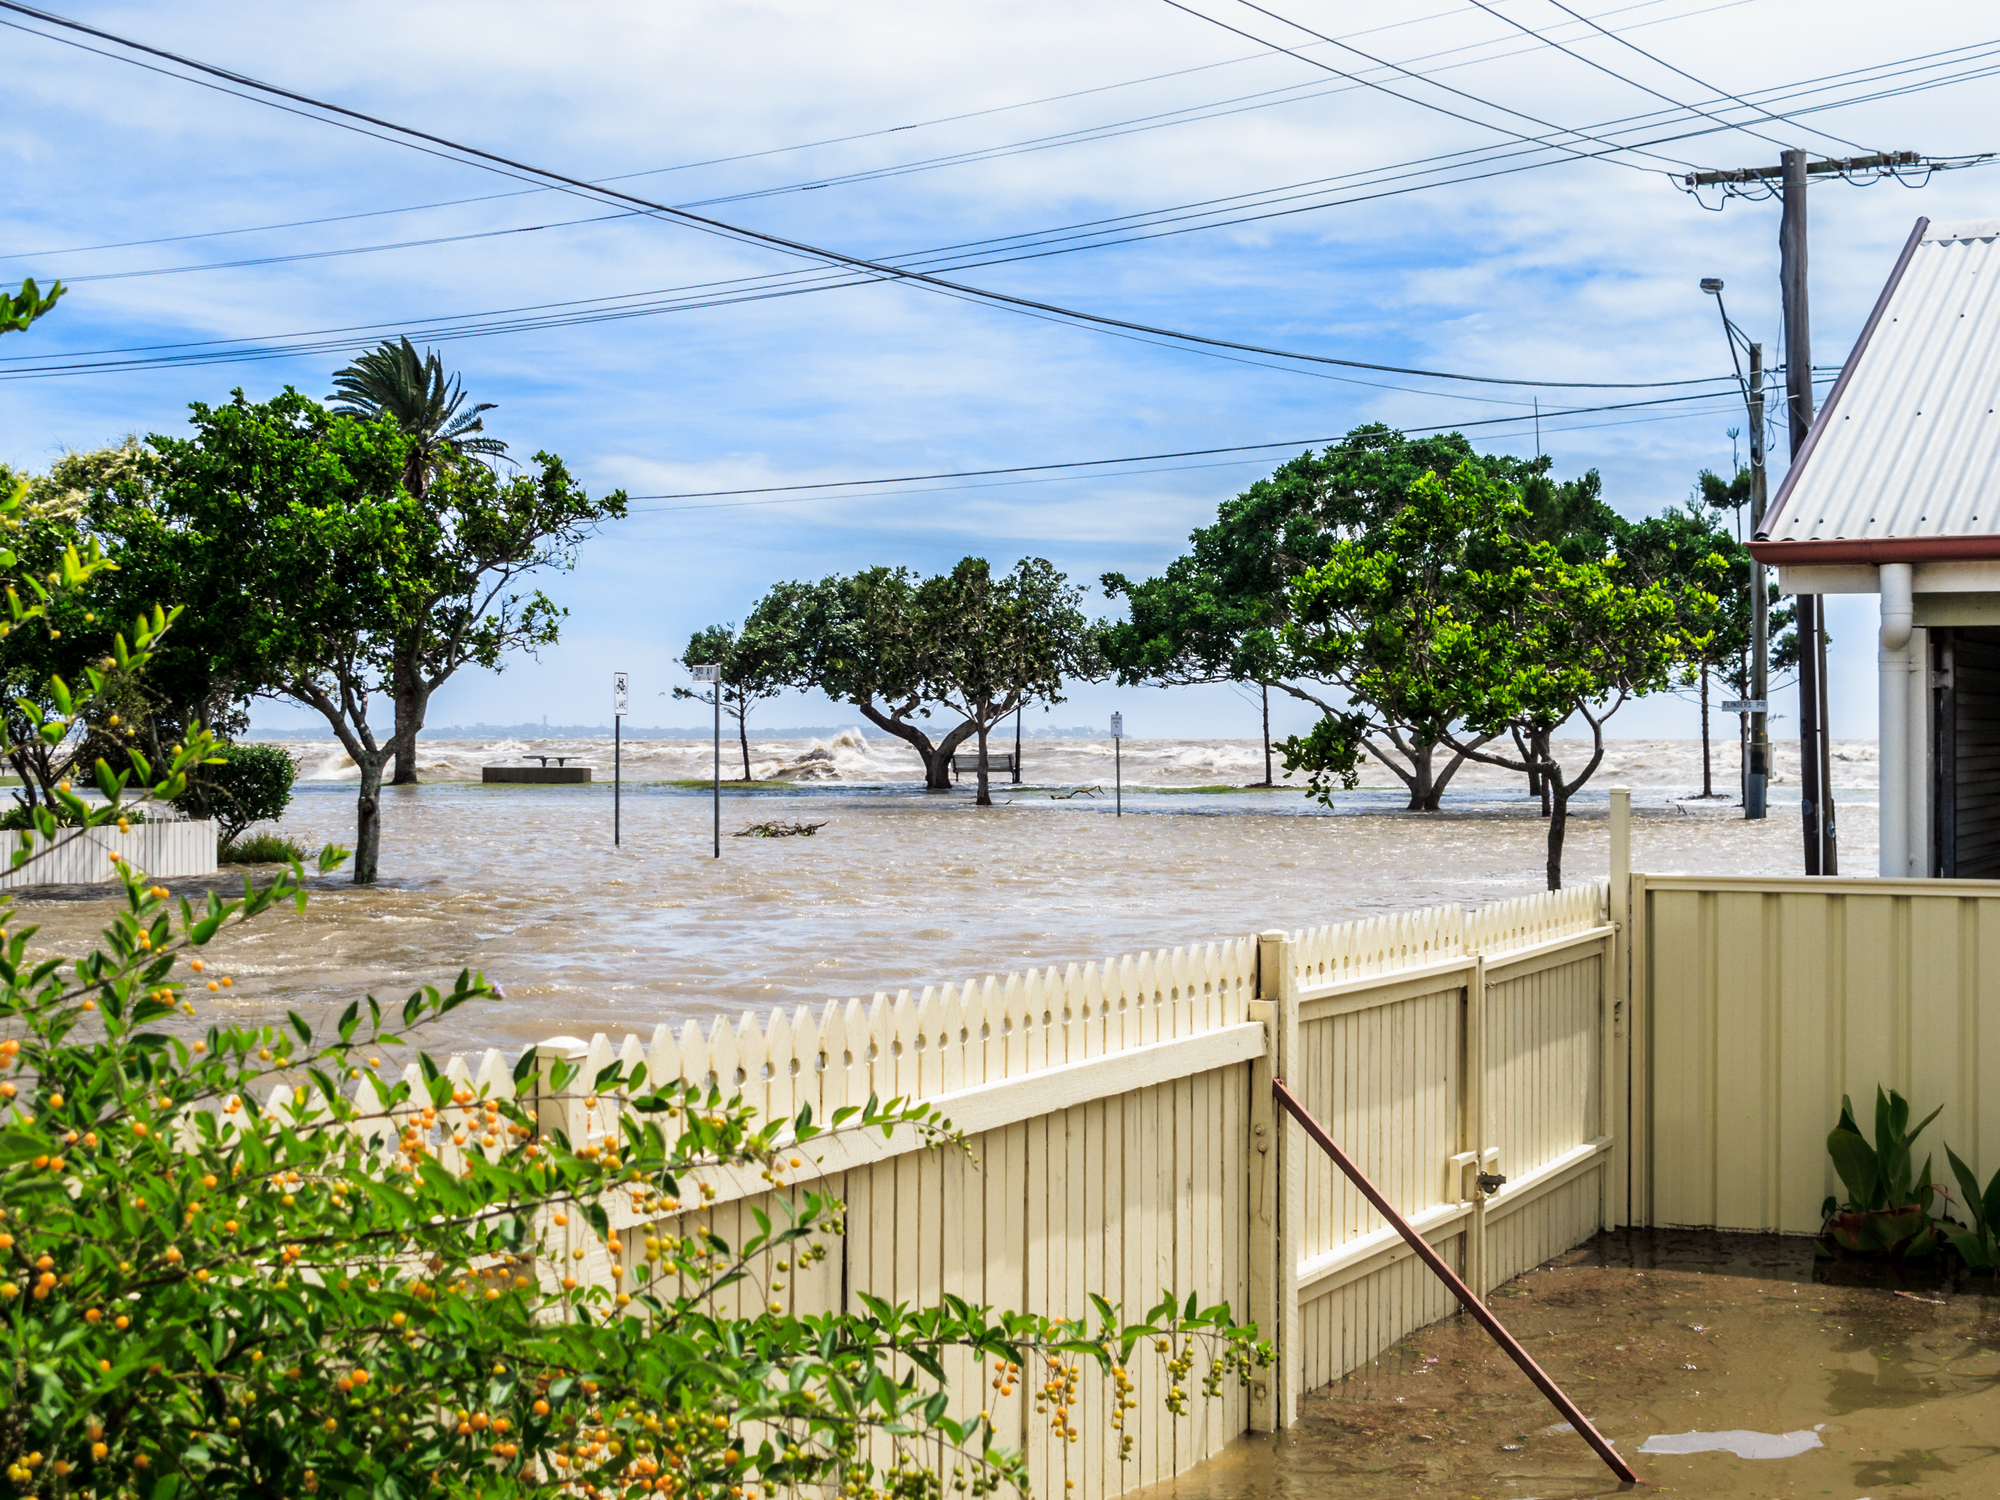 Scientists state that climate change-caused coastal flooding may have a marked effect on the global gross domestic product (GDP)